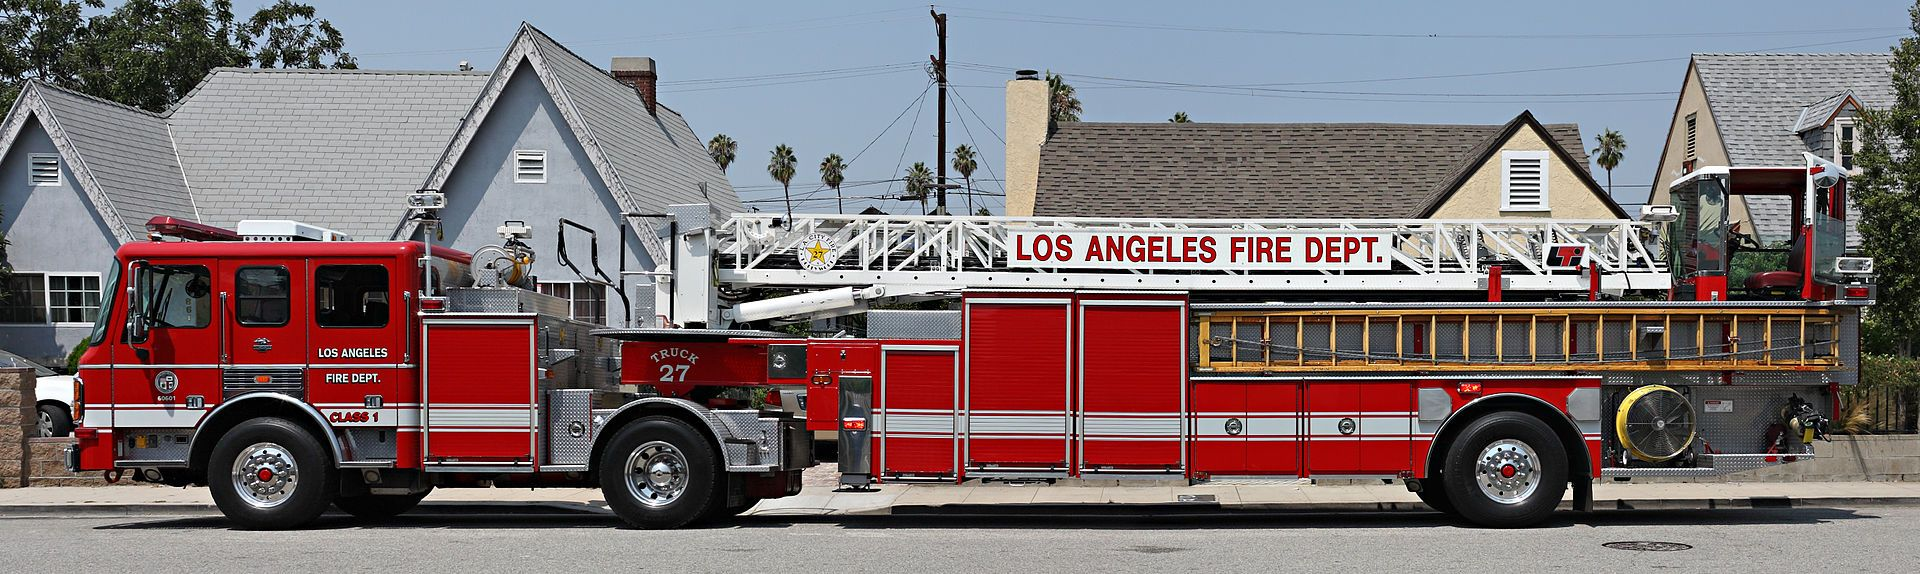 lafd ladder truck fire engine wikipedia firefighting